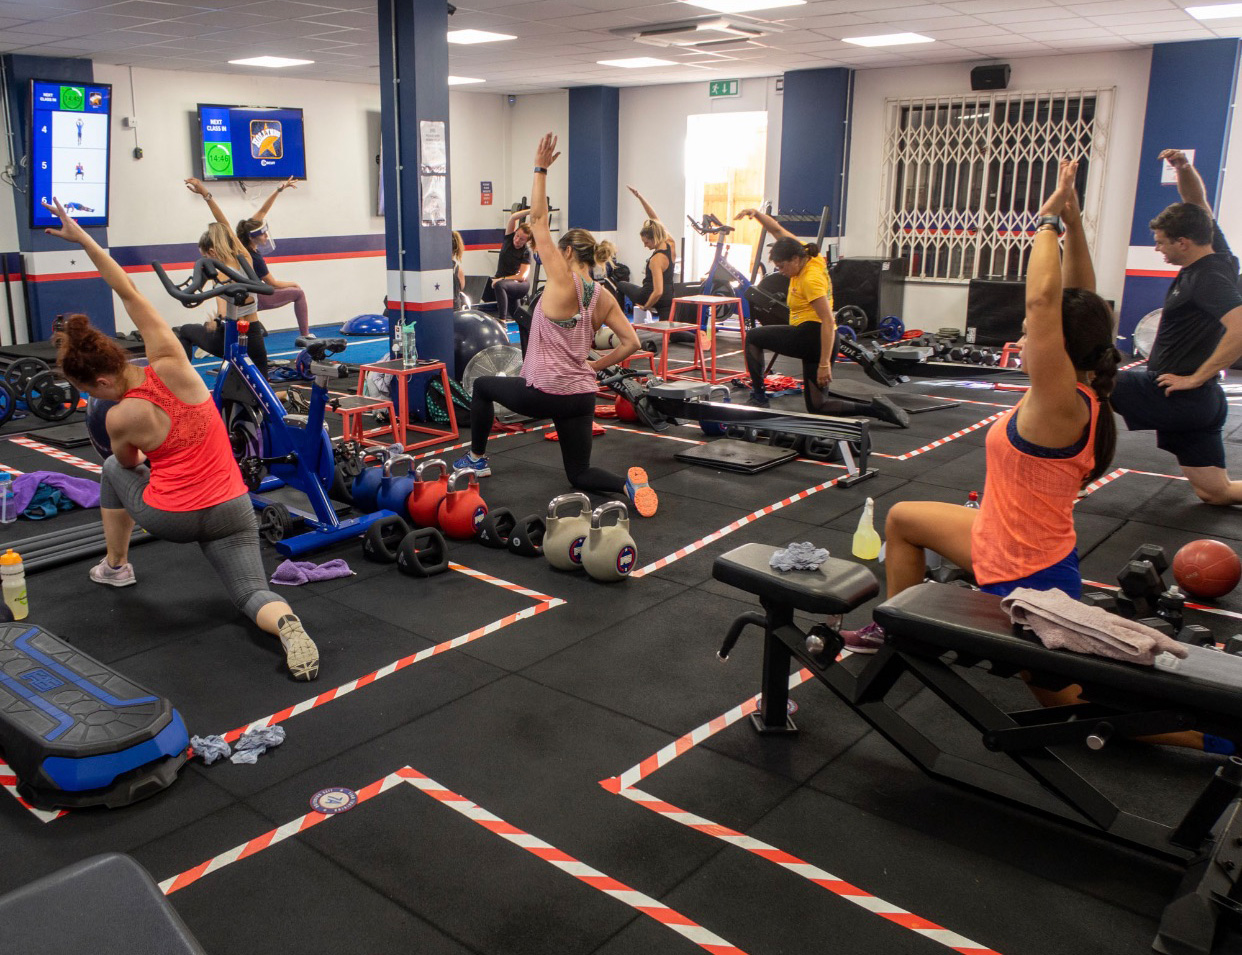 F45 Ravenscourt Park: We Are Committed To Your Physical And Mental Health